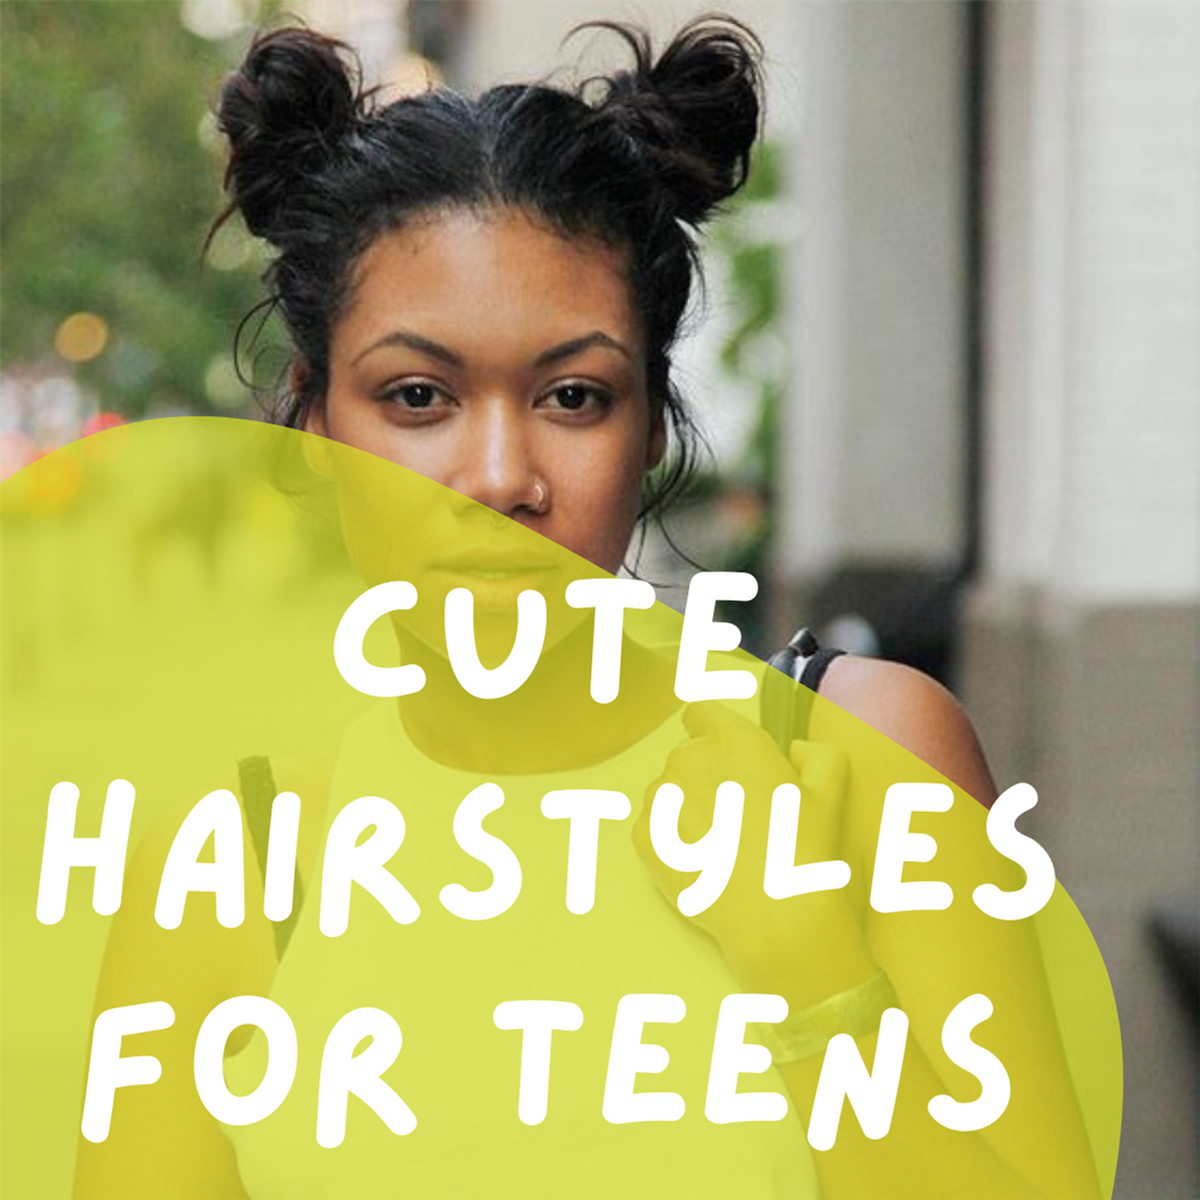 Cute Hairstyles for Teens